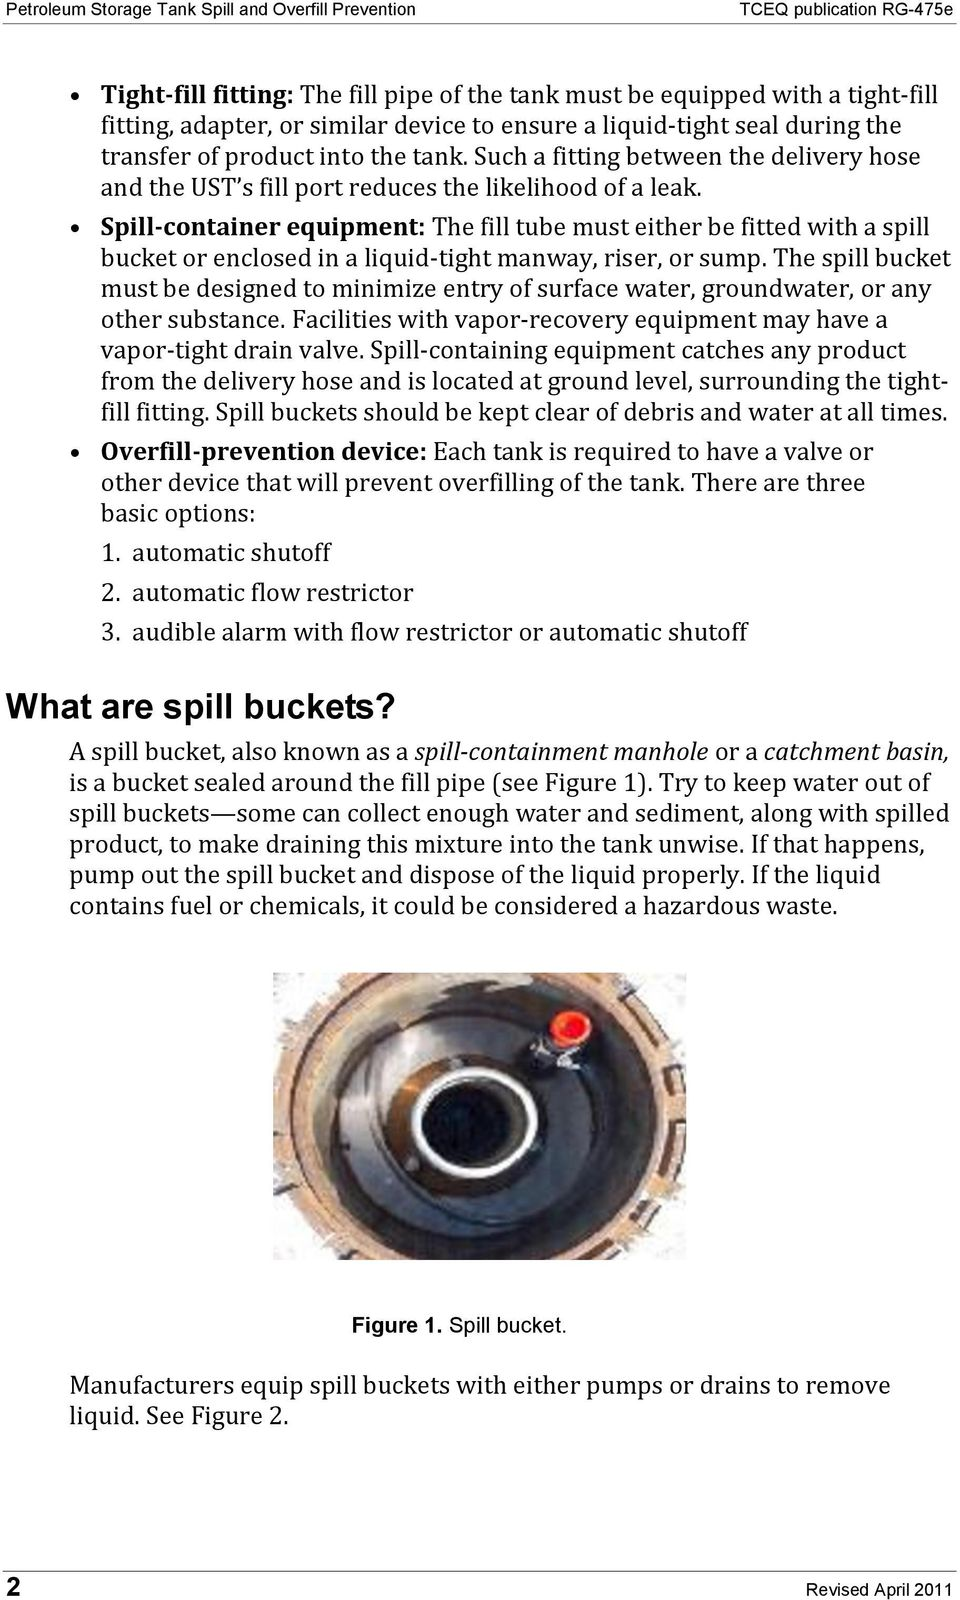 Spill-container equipment: The fill tube must either be fitted with a spill bucket or enclosed in a liquid-tight manway, riser, or sump.